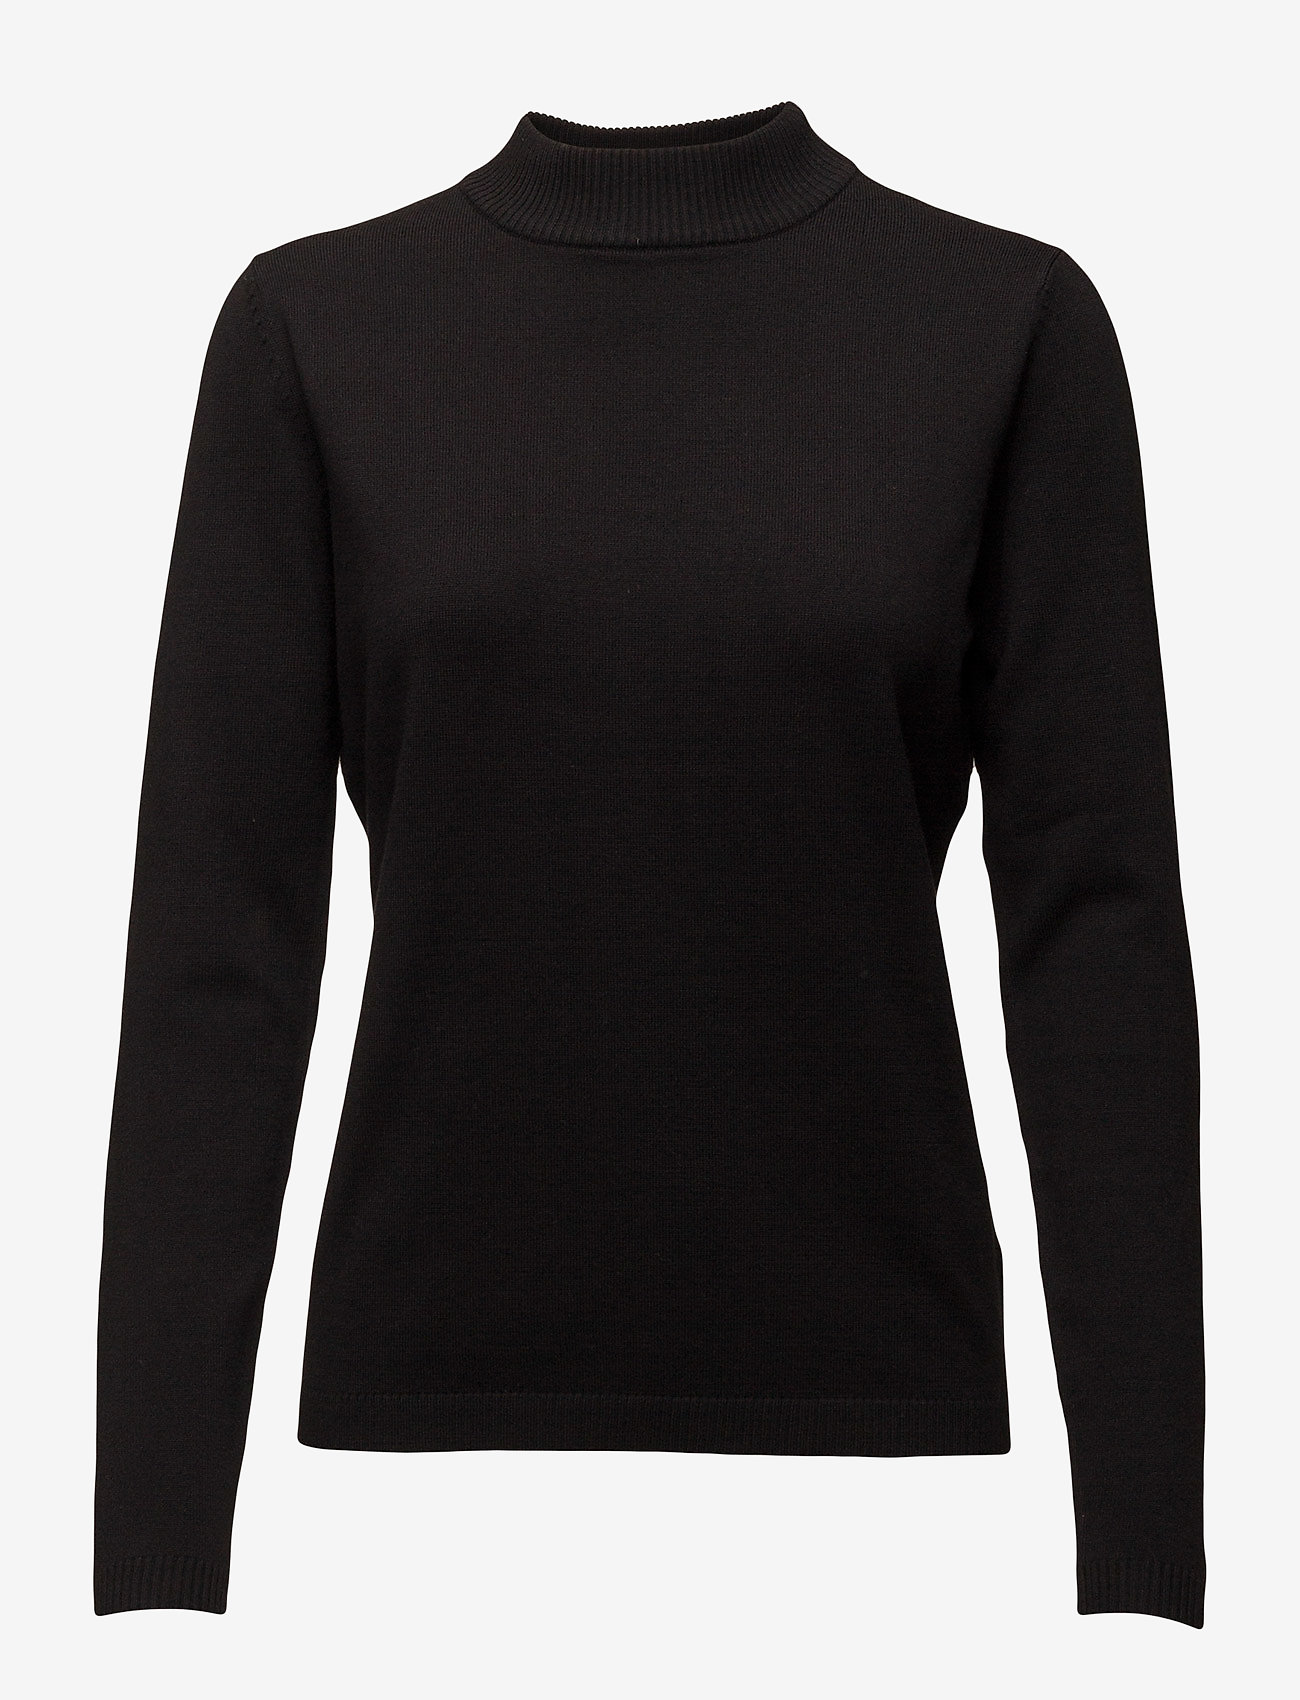 Soft Rebels - Zara Turtleneck - rullekraver - 001 black - 1